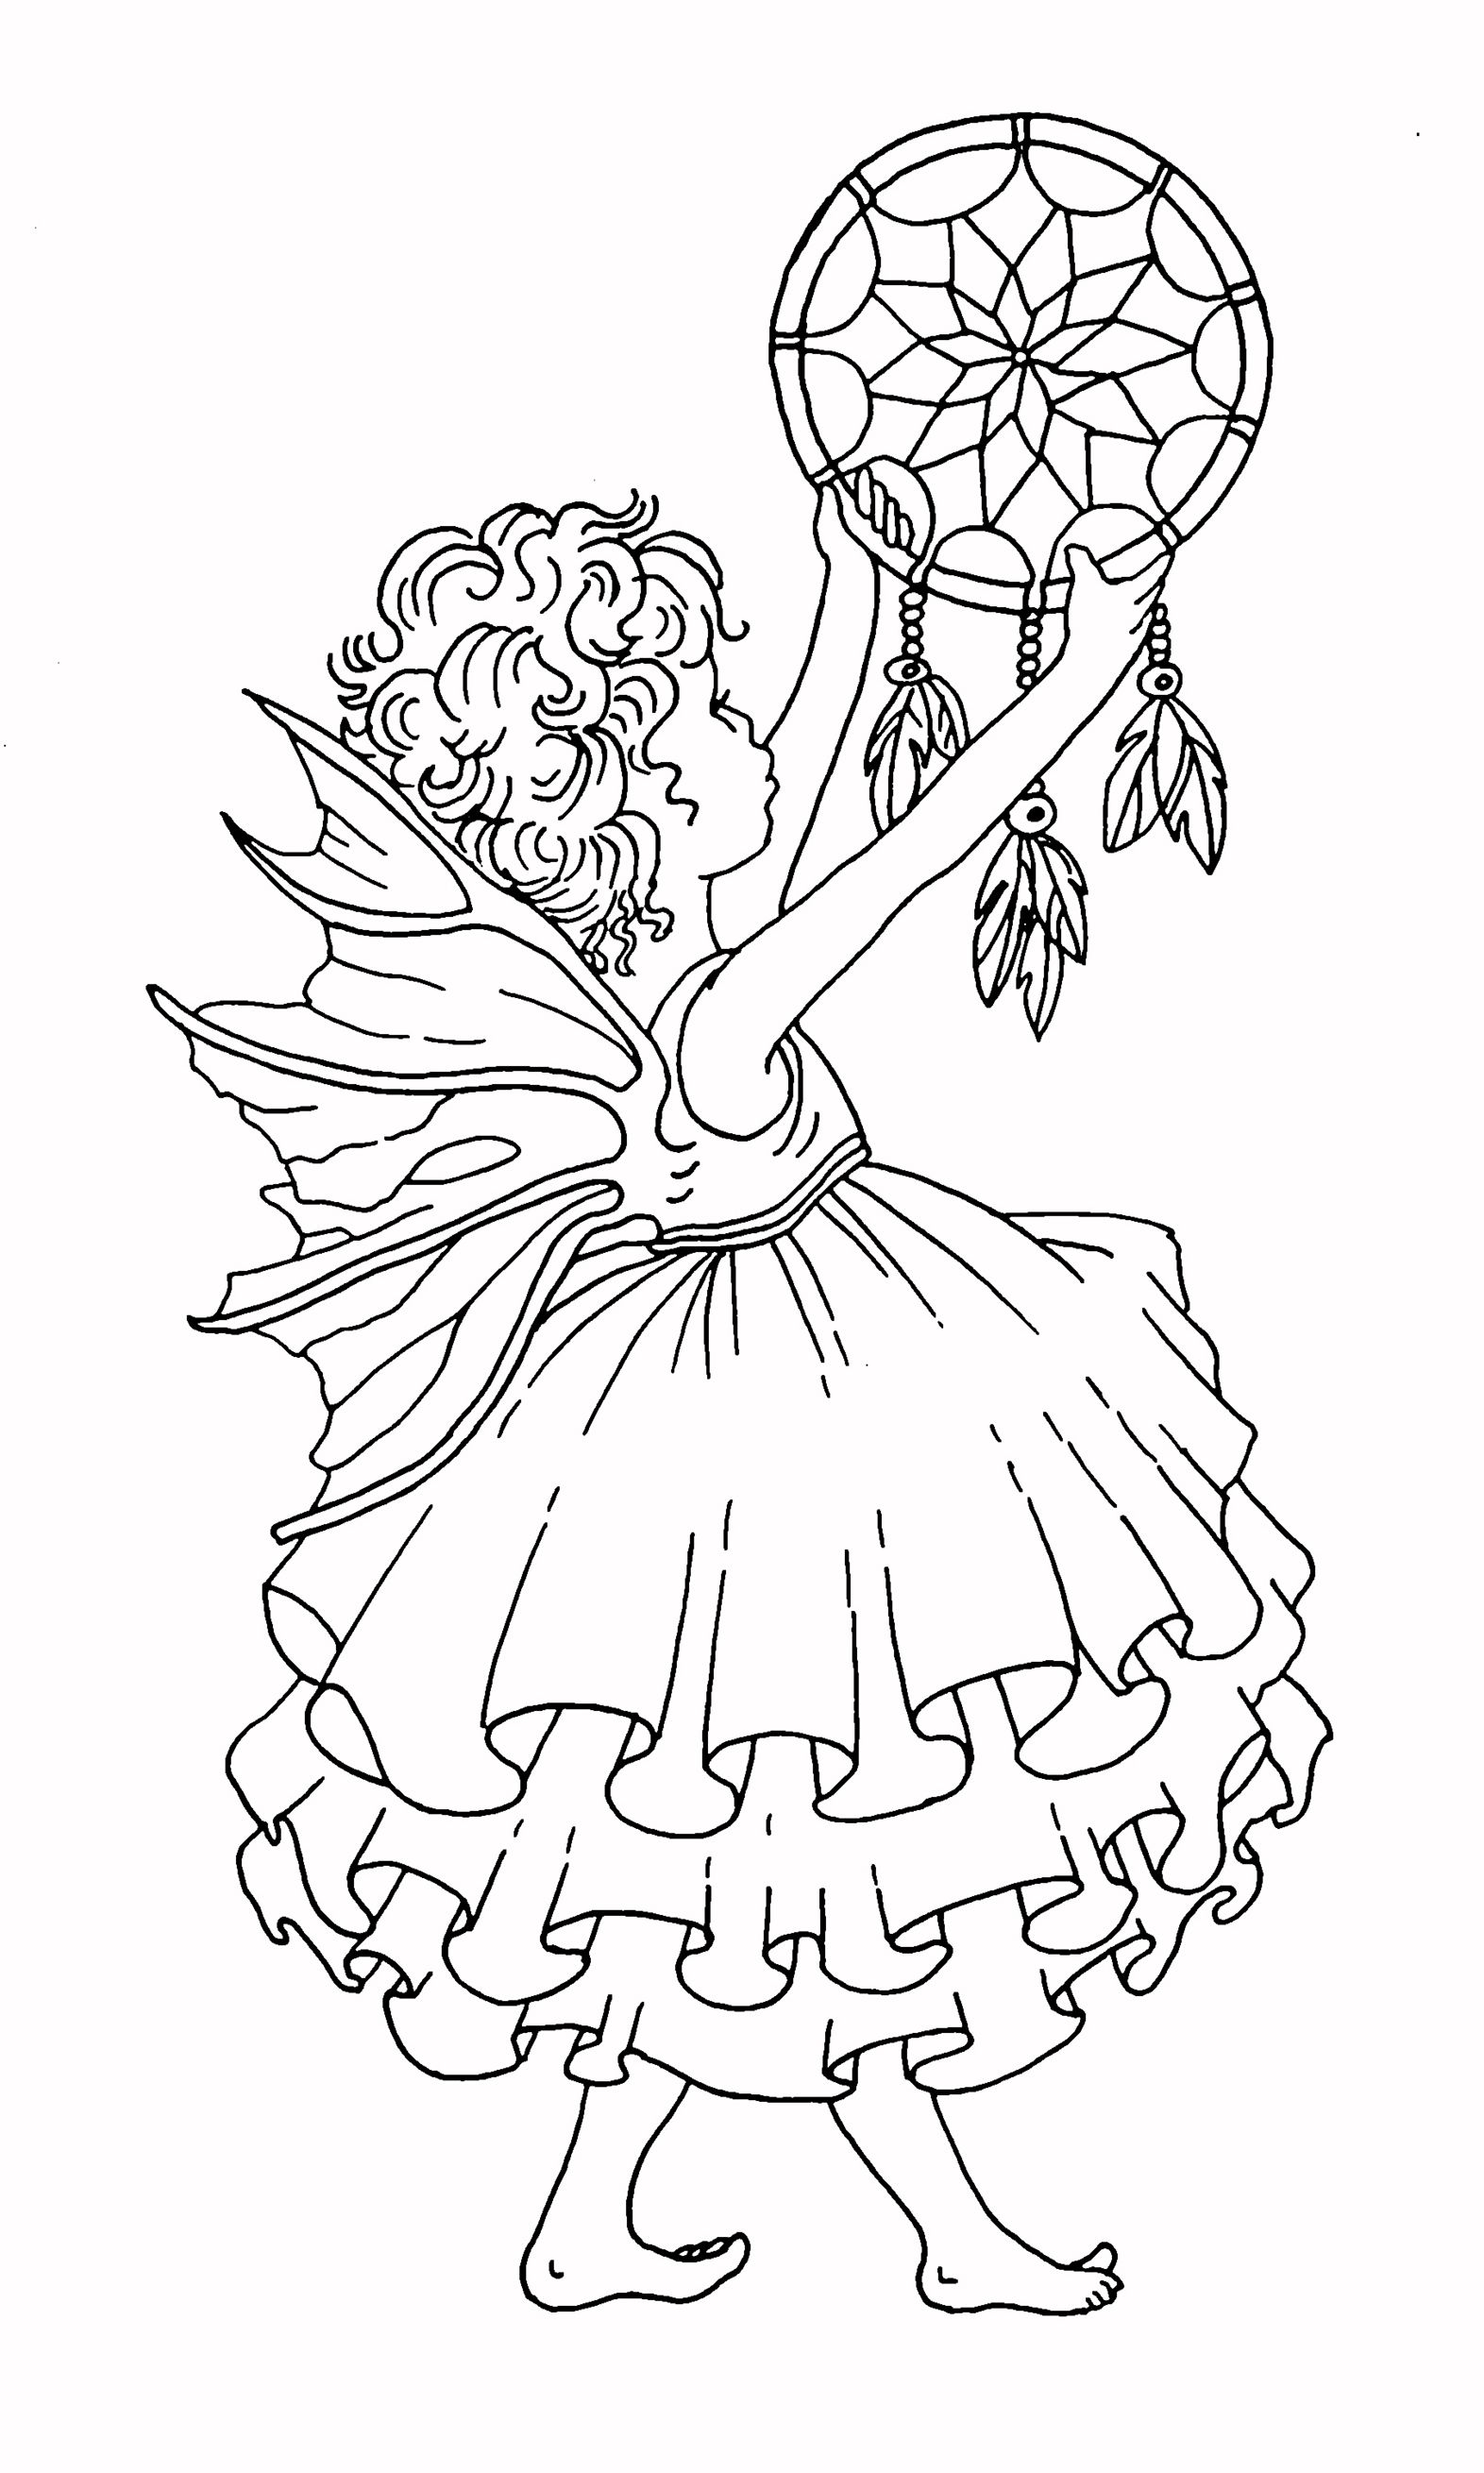 coloring pages dreaming - photo#42